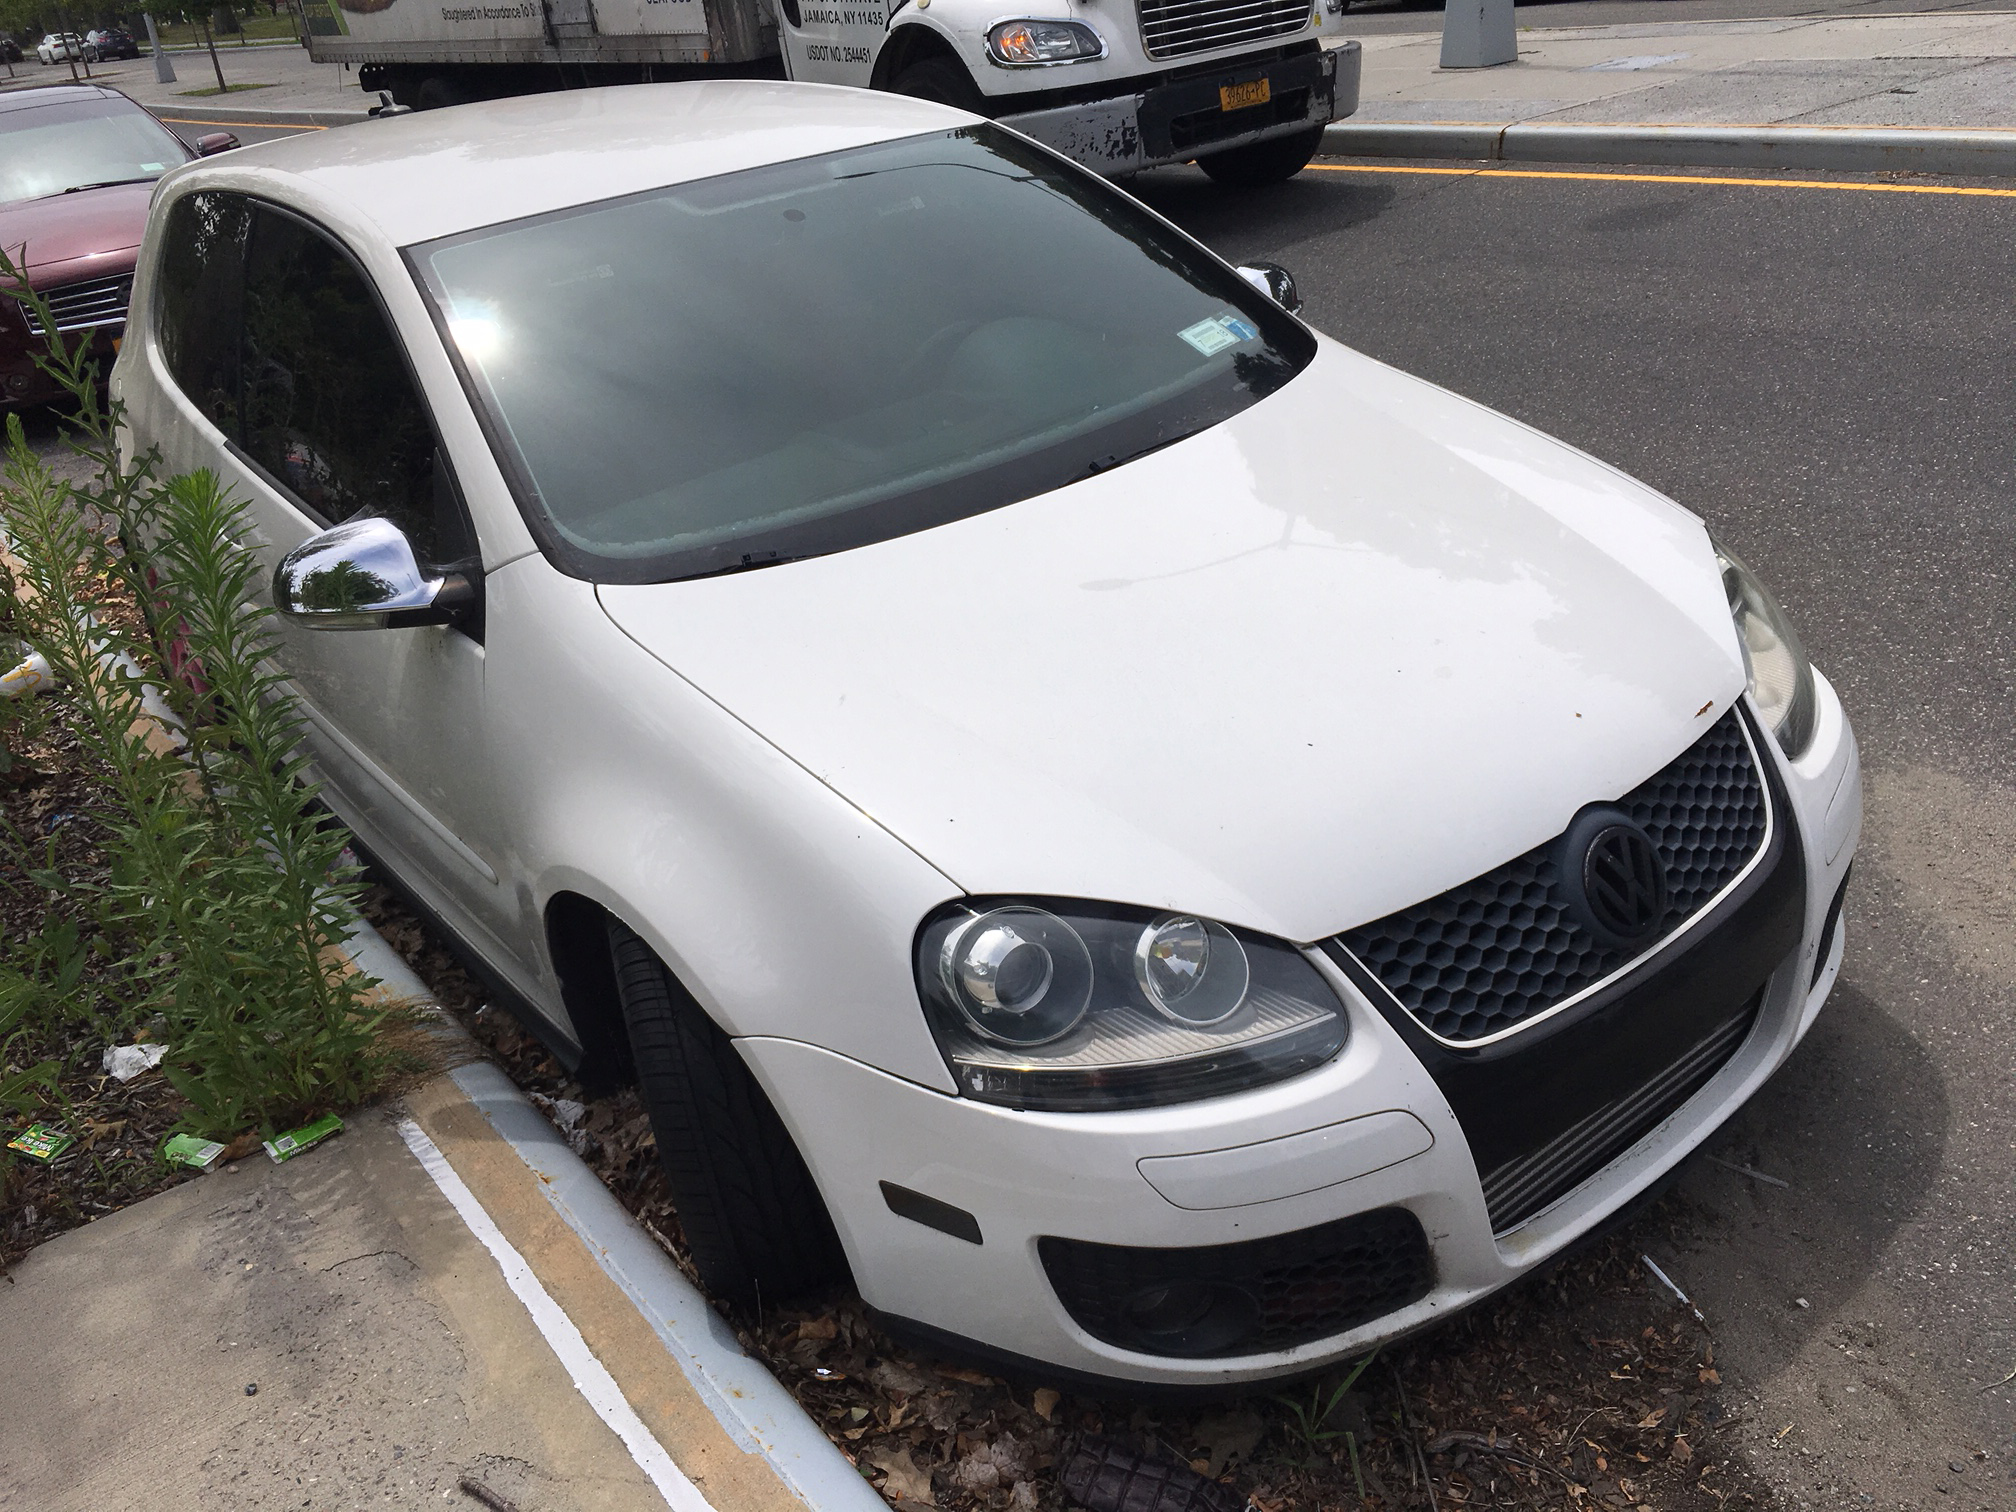 sell-08-VW-gti-El-Miradero